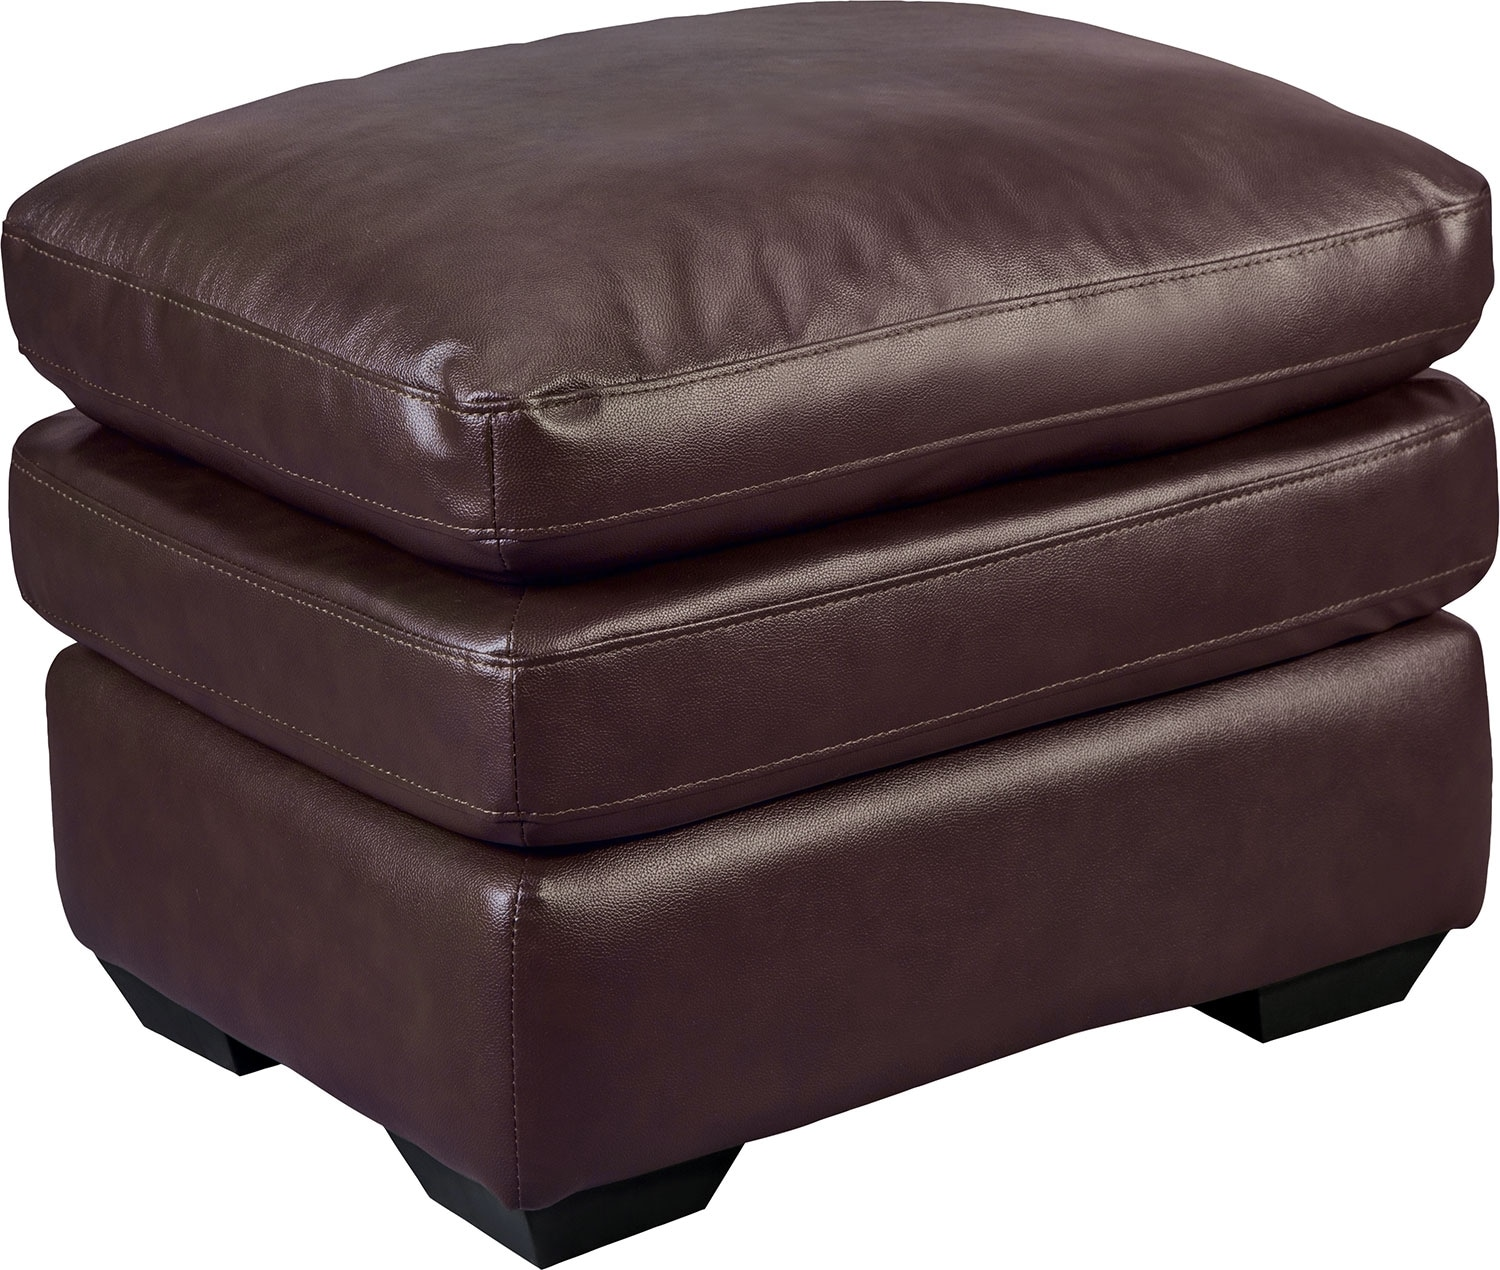 Living Room Furniture - Marty Genuine Leather Ottoman - Brown